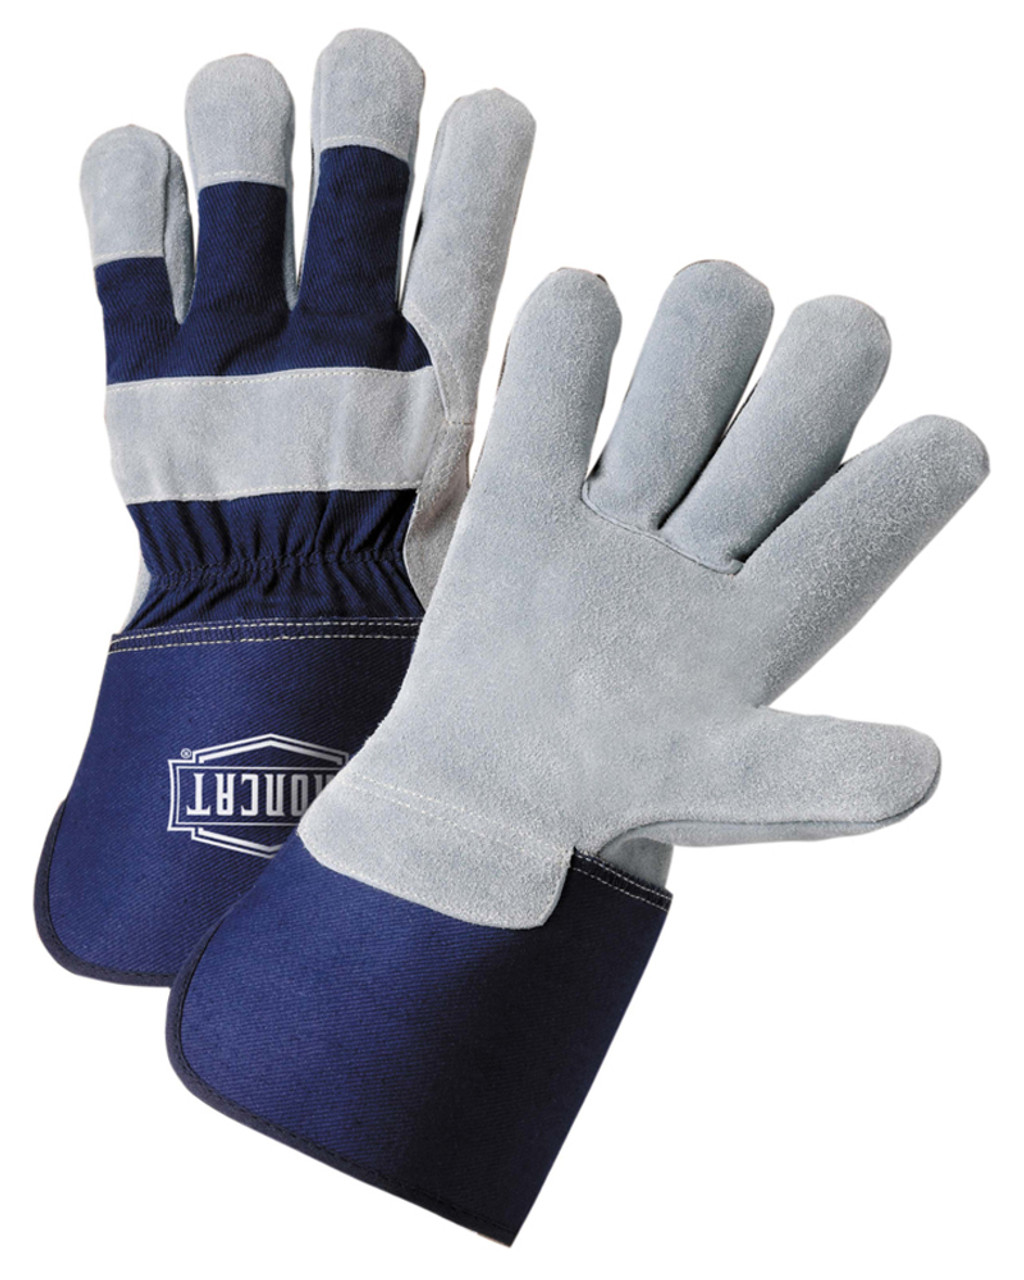 IronCat IC8 Cowhide Leather Palm 4 5 In Gauntlet Cuff Gloves